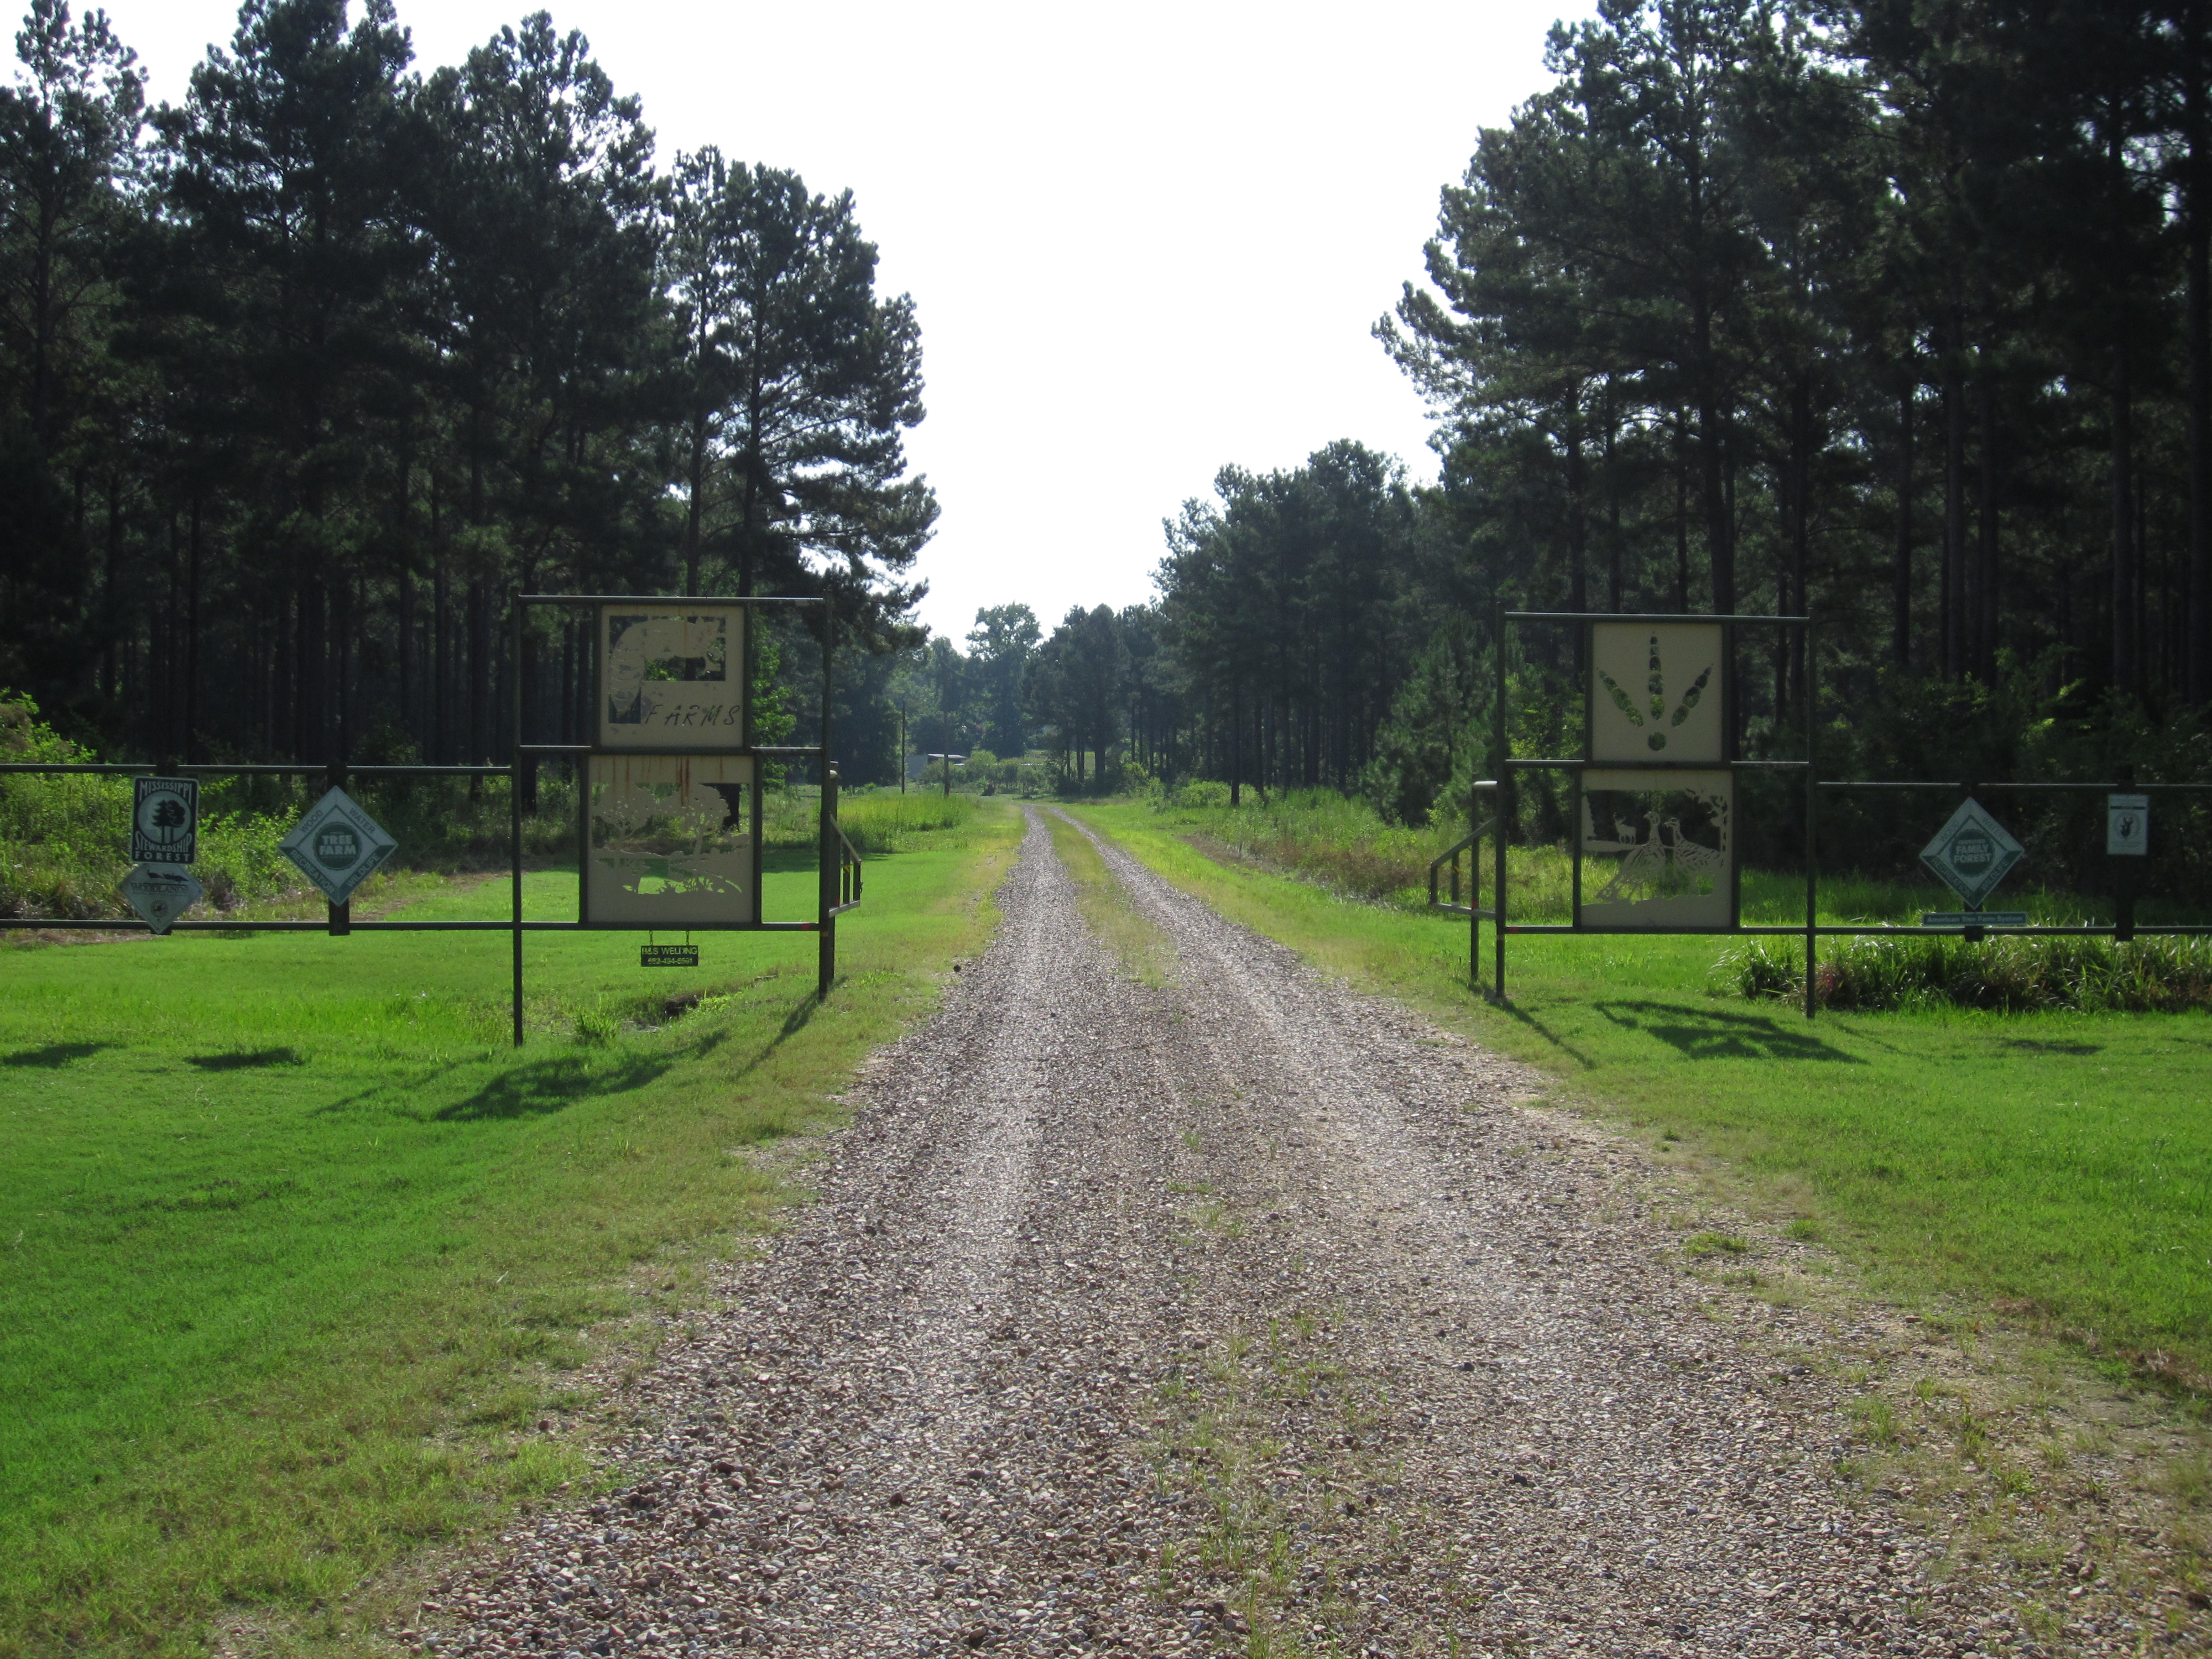 Mississippi monroe county becker - I Feel That Mr Watkins Is An Outstanding Tree Farmer Because He Manages His Timber Wildlife And The Habitat In Which They Live To Better The Quality Of